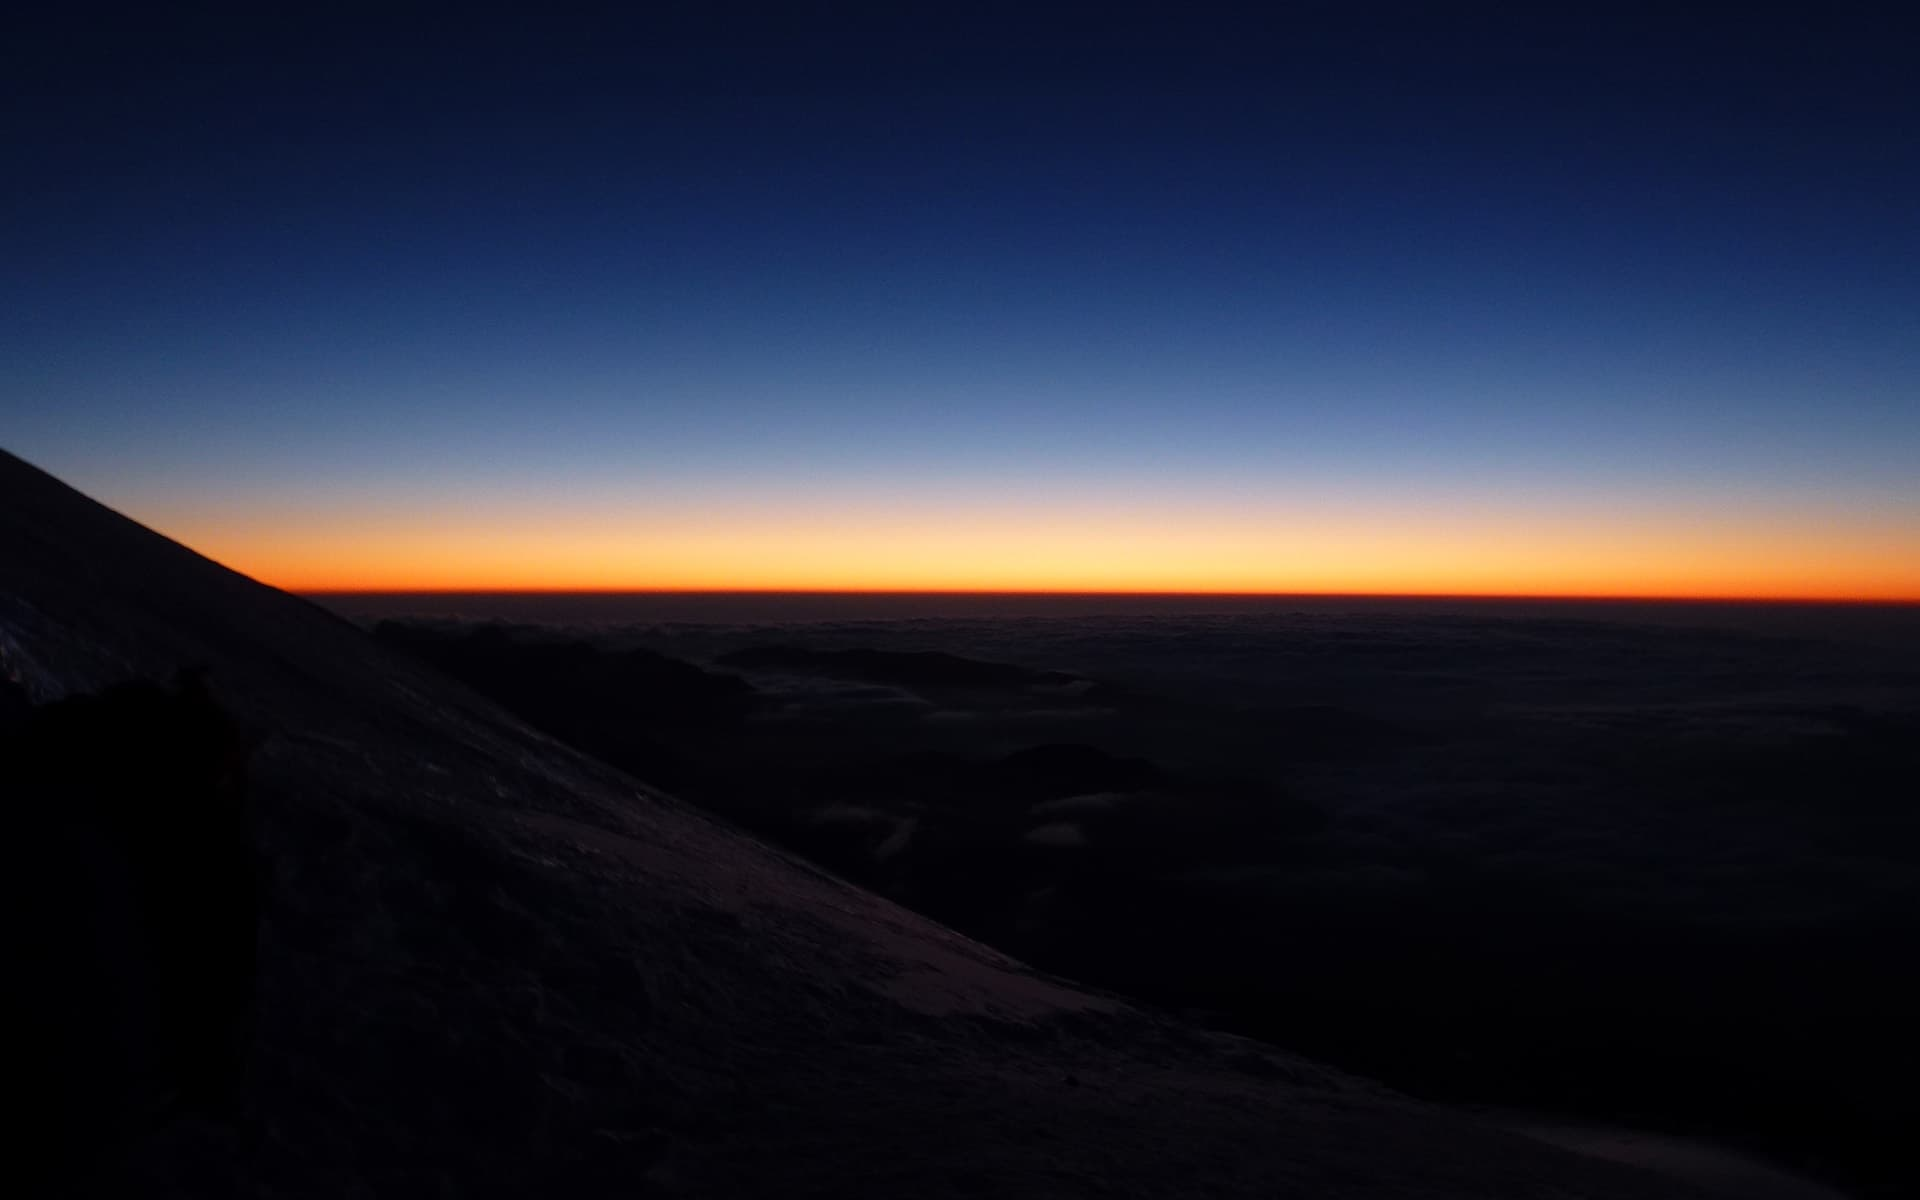 Mount Elbrus on the top, sunset